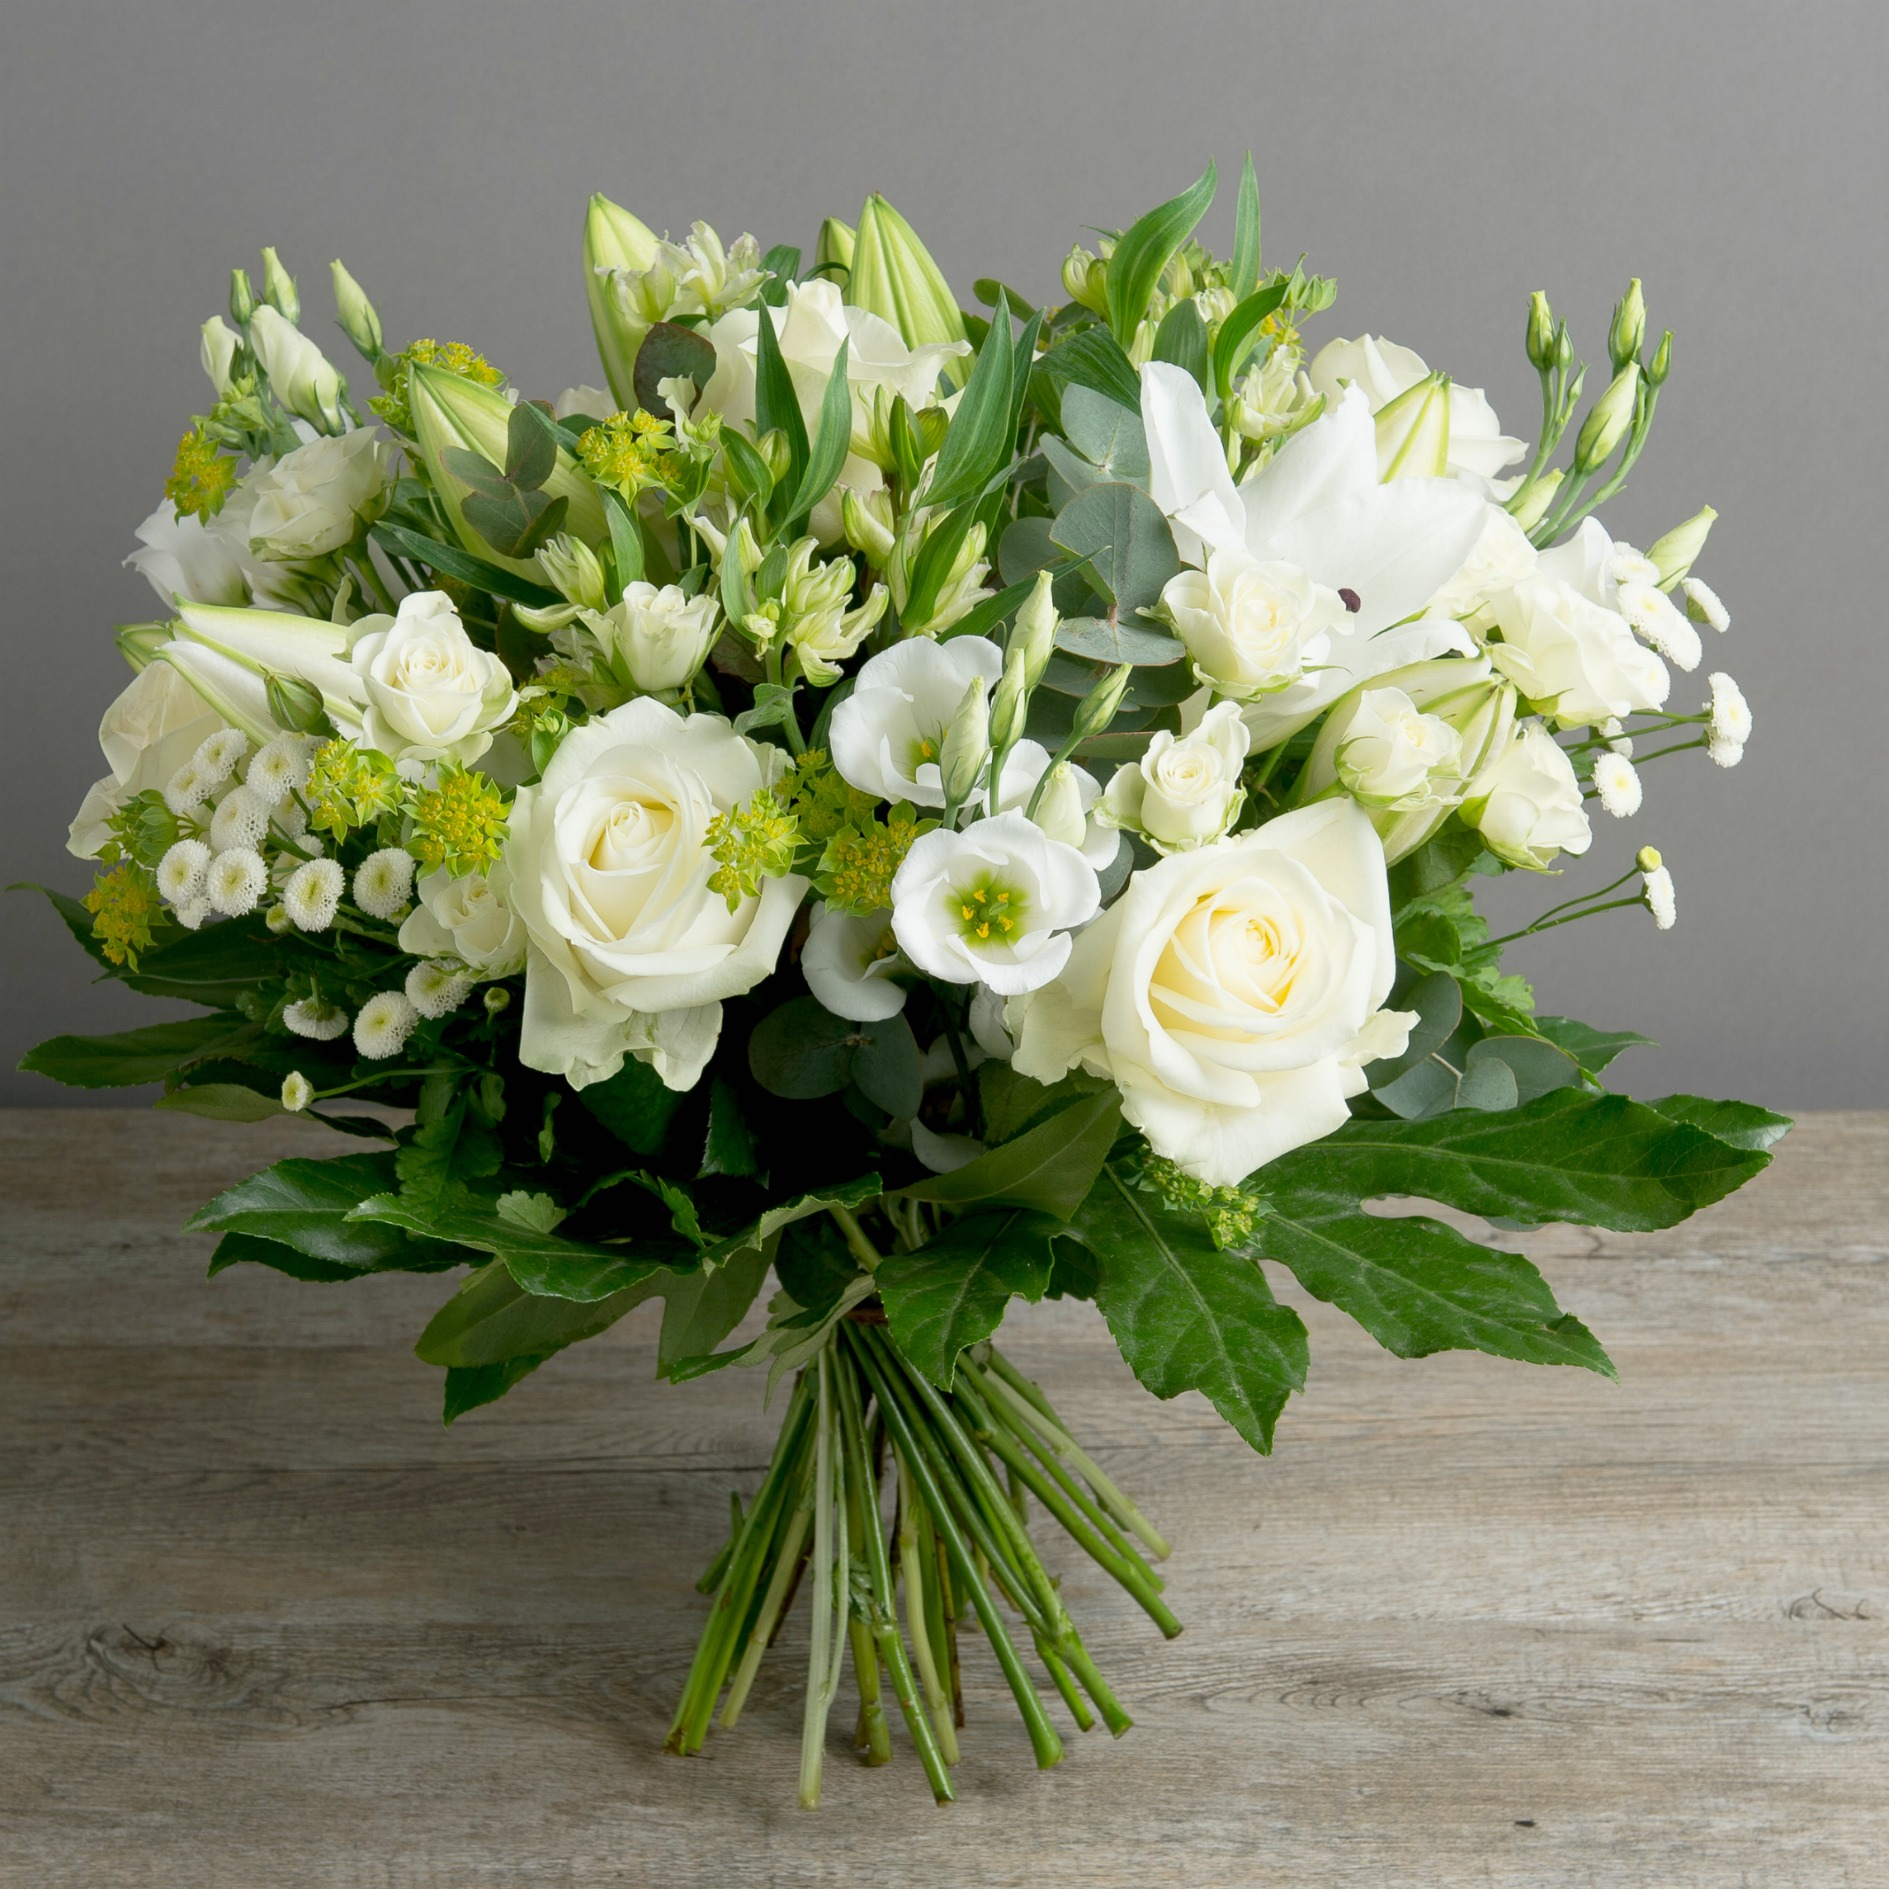 Bouquet Of Flowers: White Flowers: Order Fresh White Flowers And Plants Online